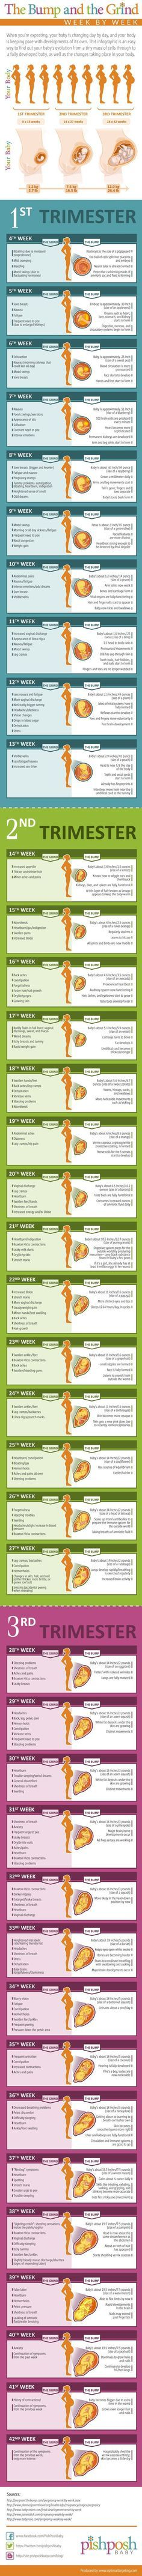 Pregnancy Week by Week Chart